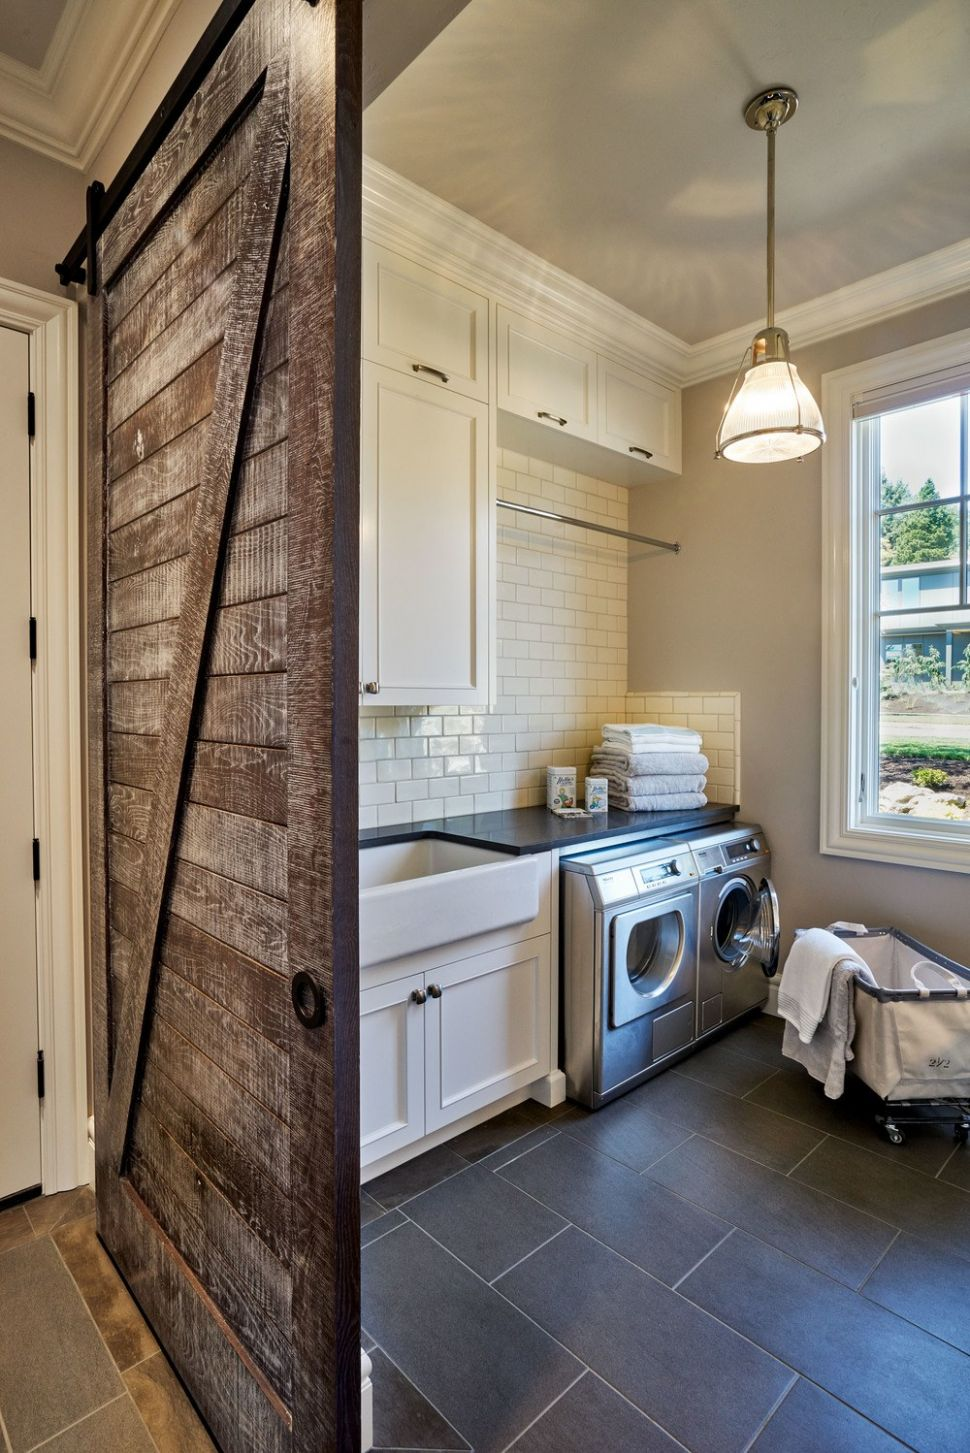 12 Beautiful and Functional Laundry Room Ideas | Homelovr